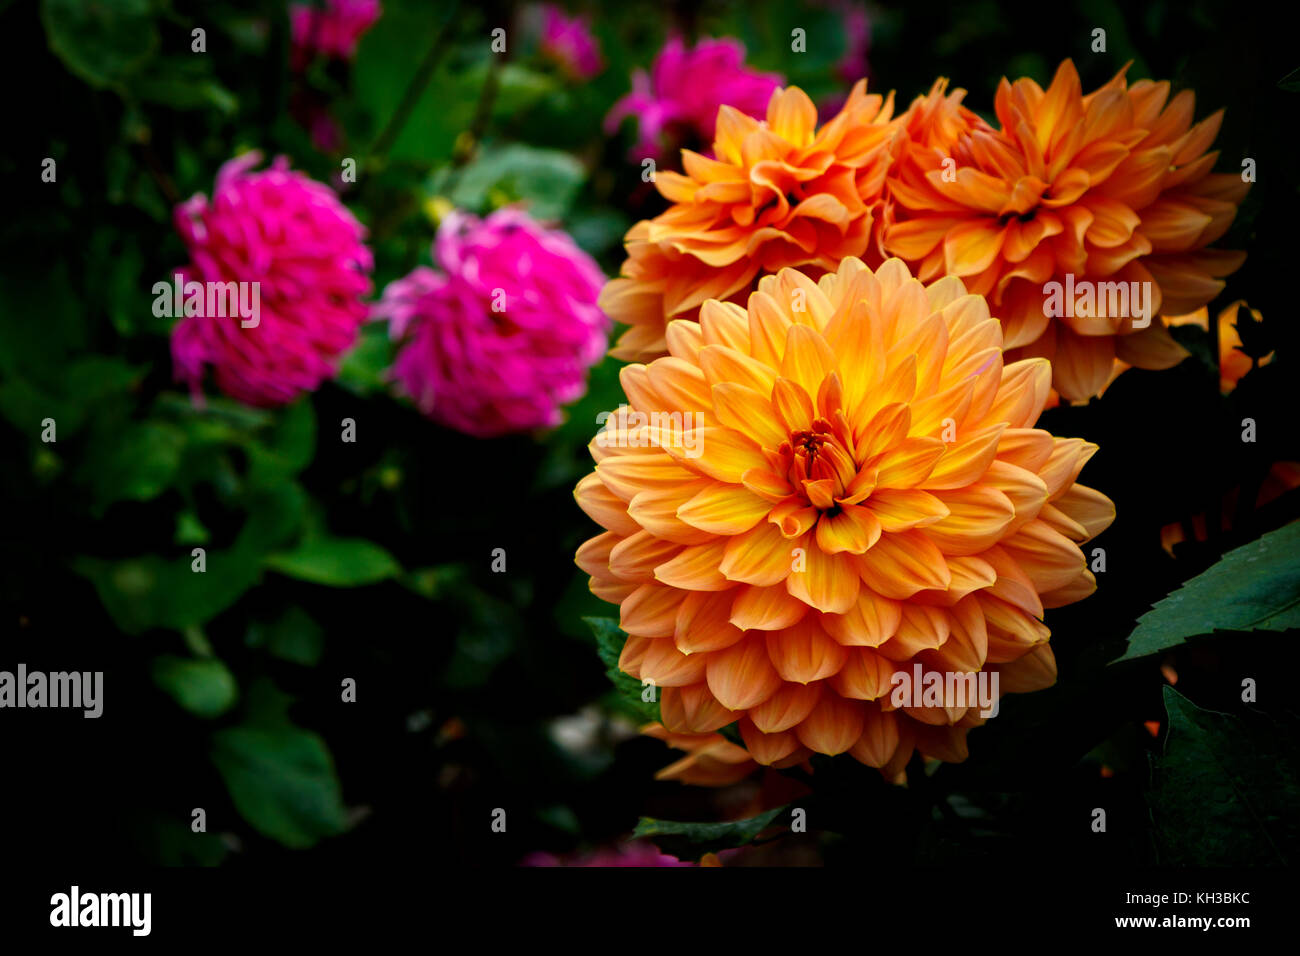 Multiple orange and pink dahlias with green leaves in background - Stock Image